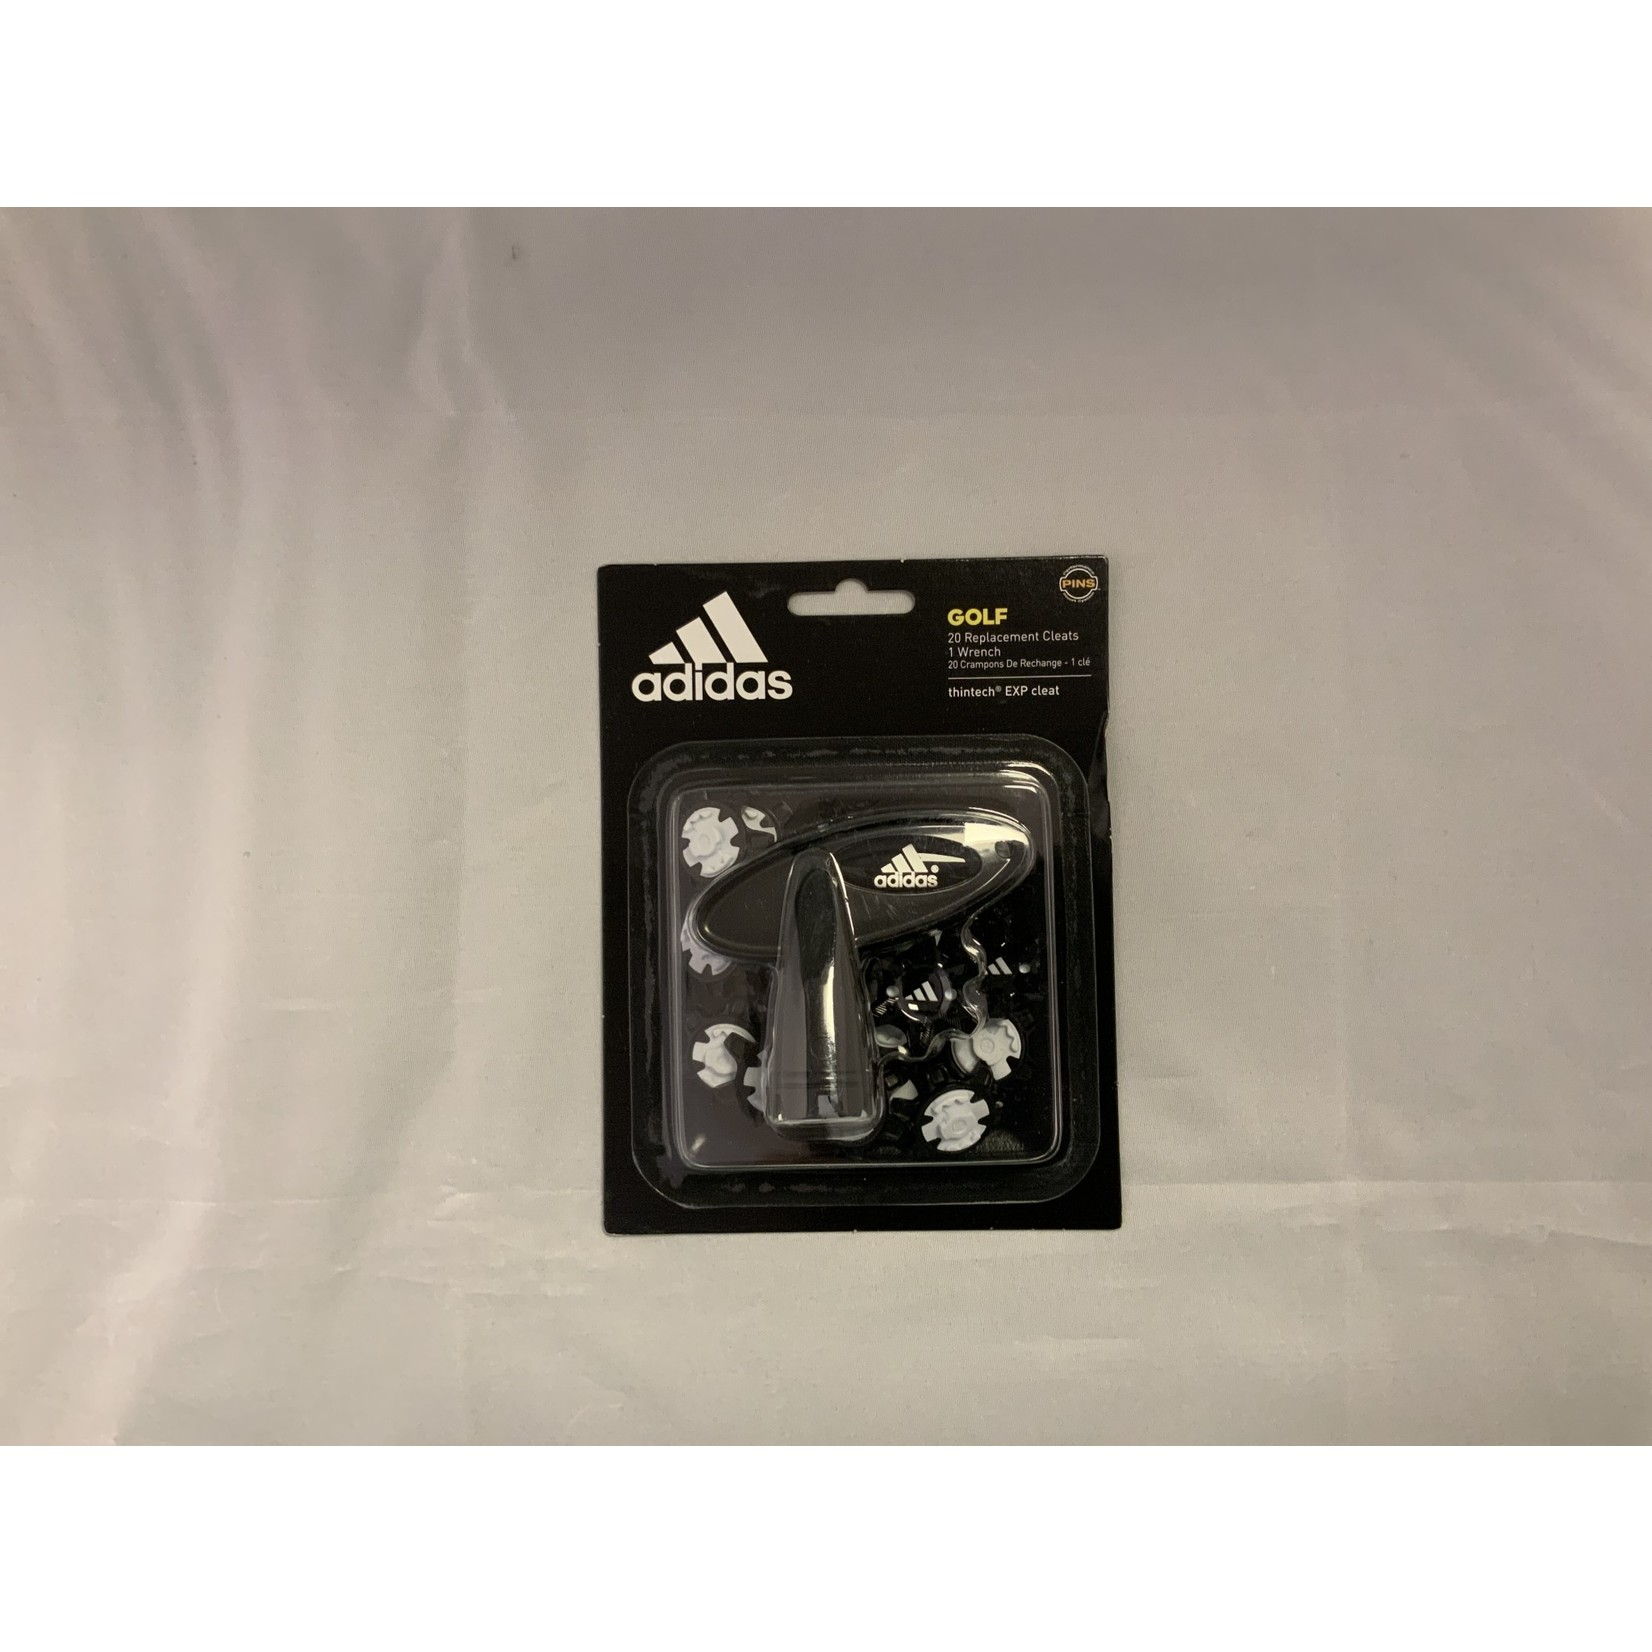 Adidas Adidas Softspikes PINS Black